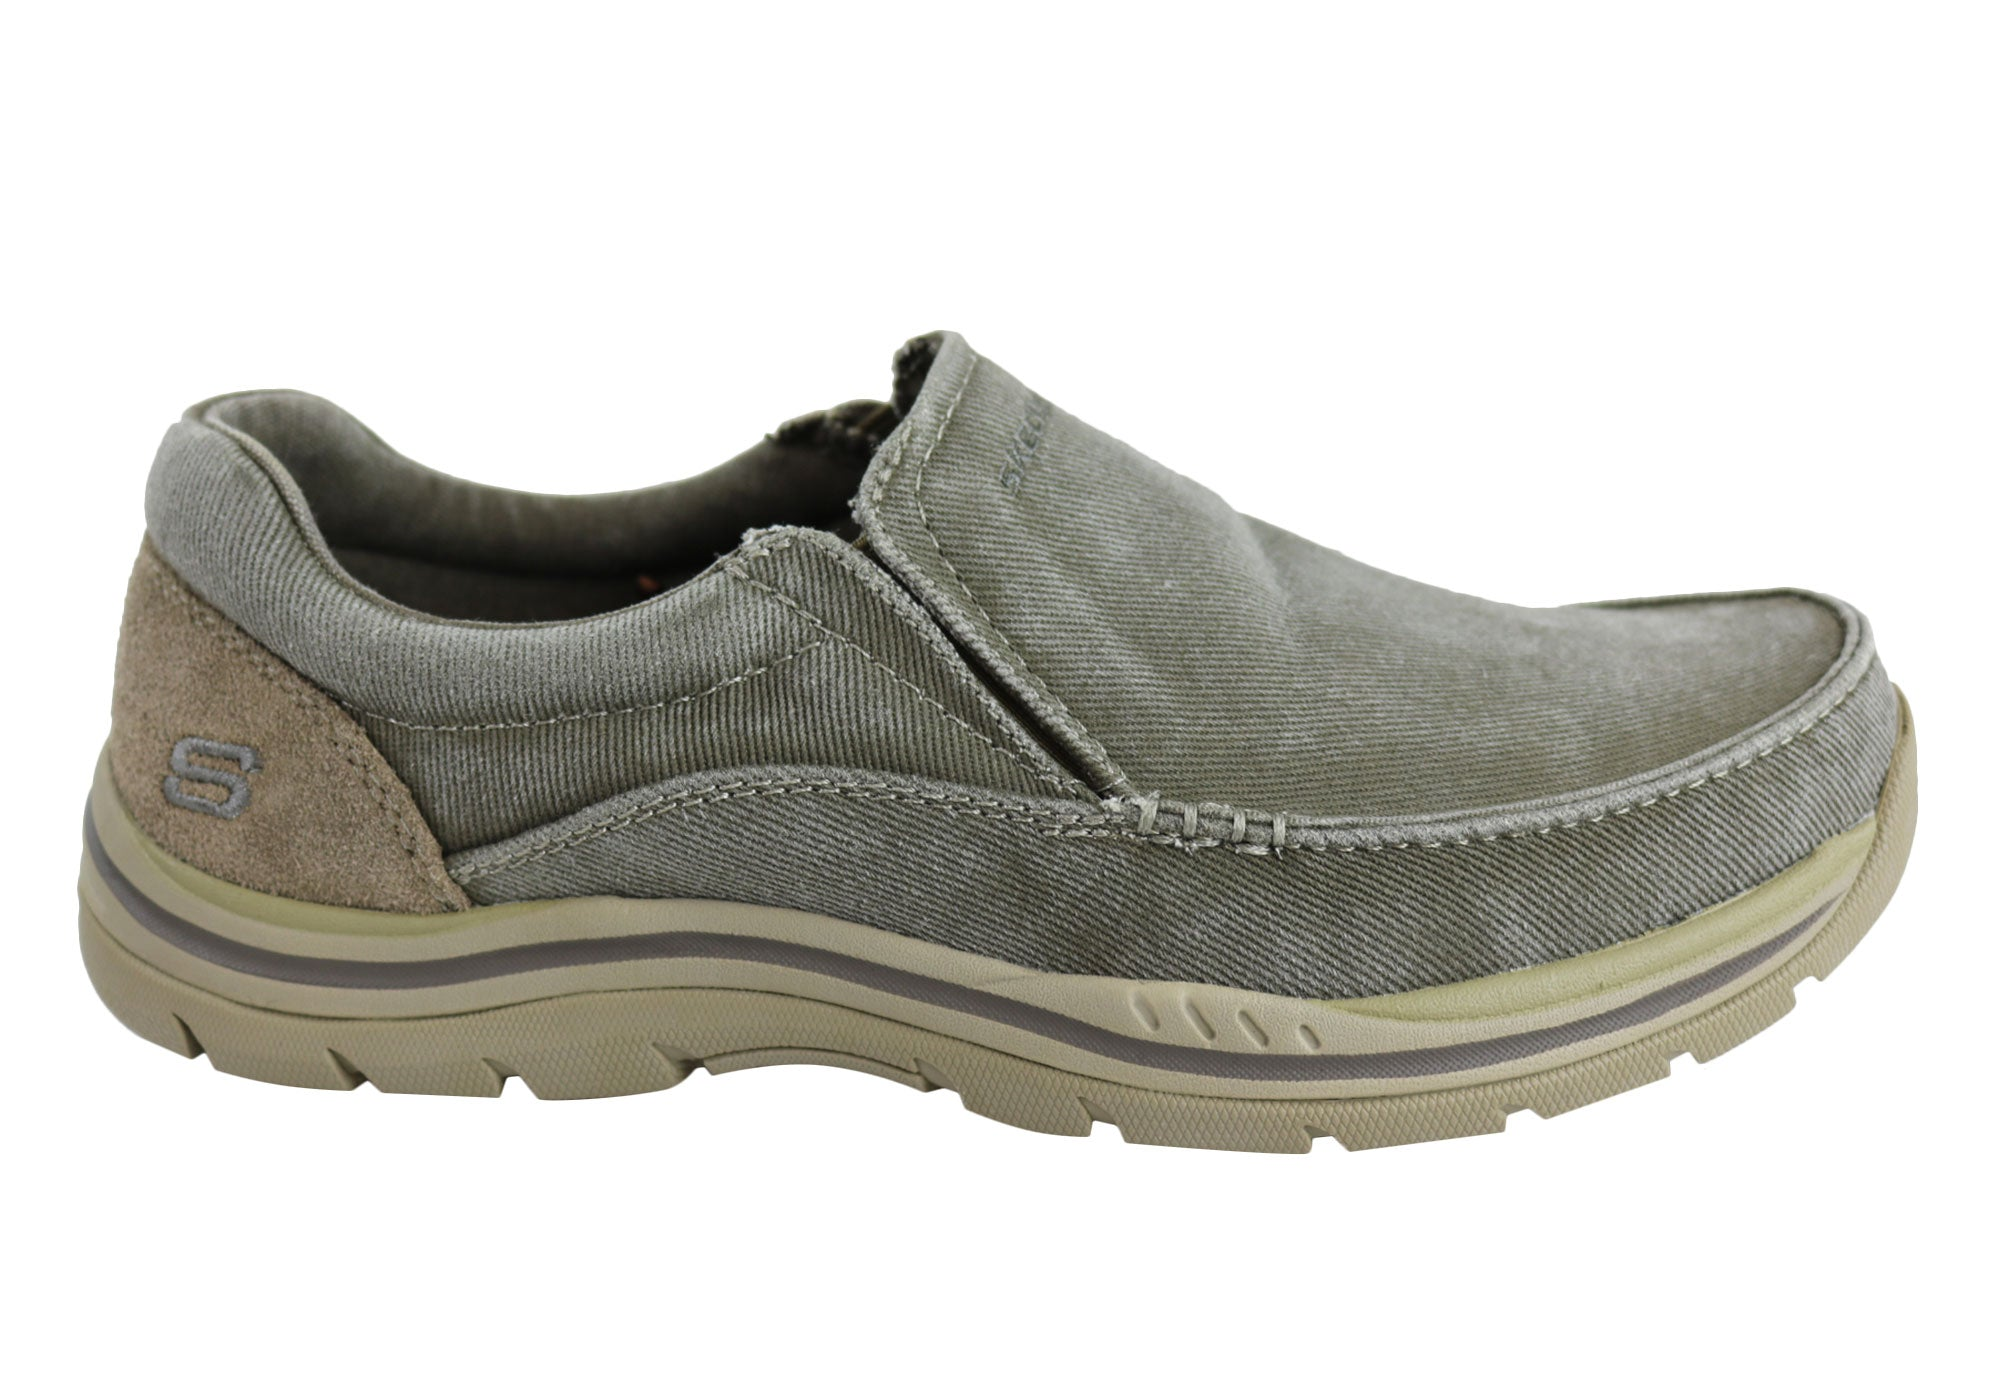 9d18a9c7 Home Skechers Relaxed Fit Expected Avillo Mens Memory Foam Slip On Shoes.  Khaki ...